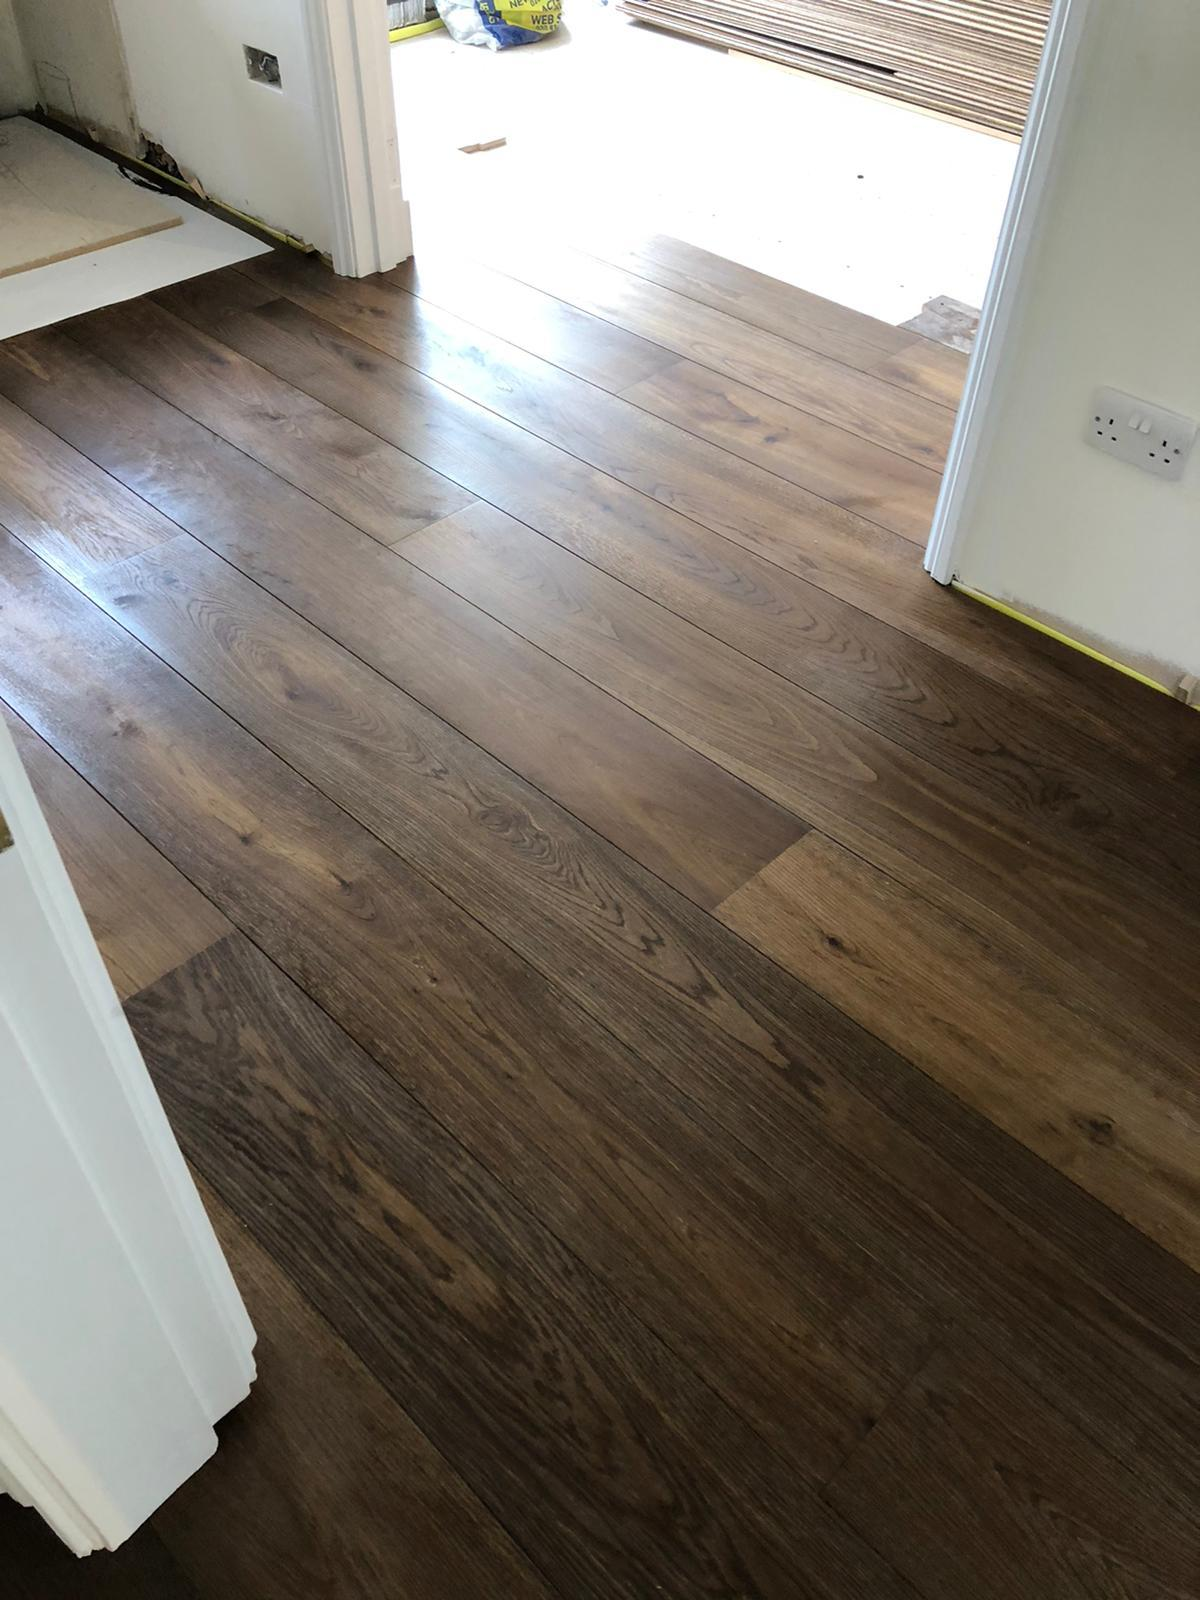 Rovers Flooring European Oak to Premises 5